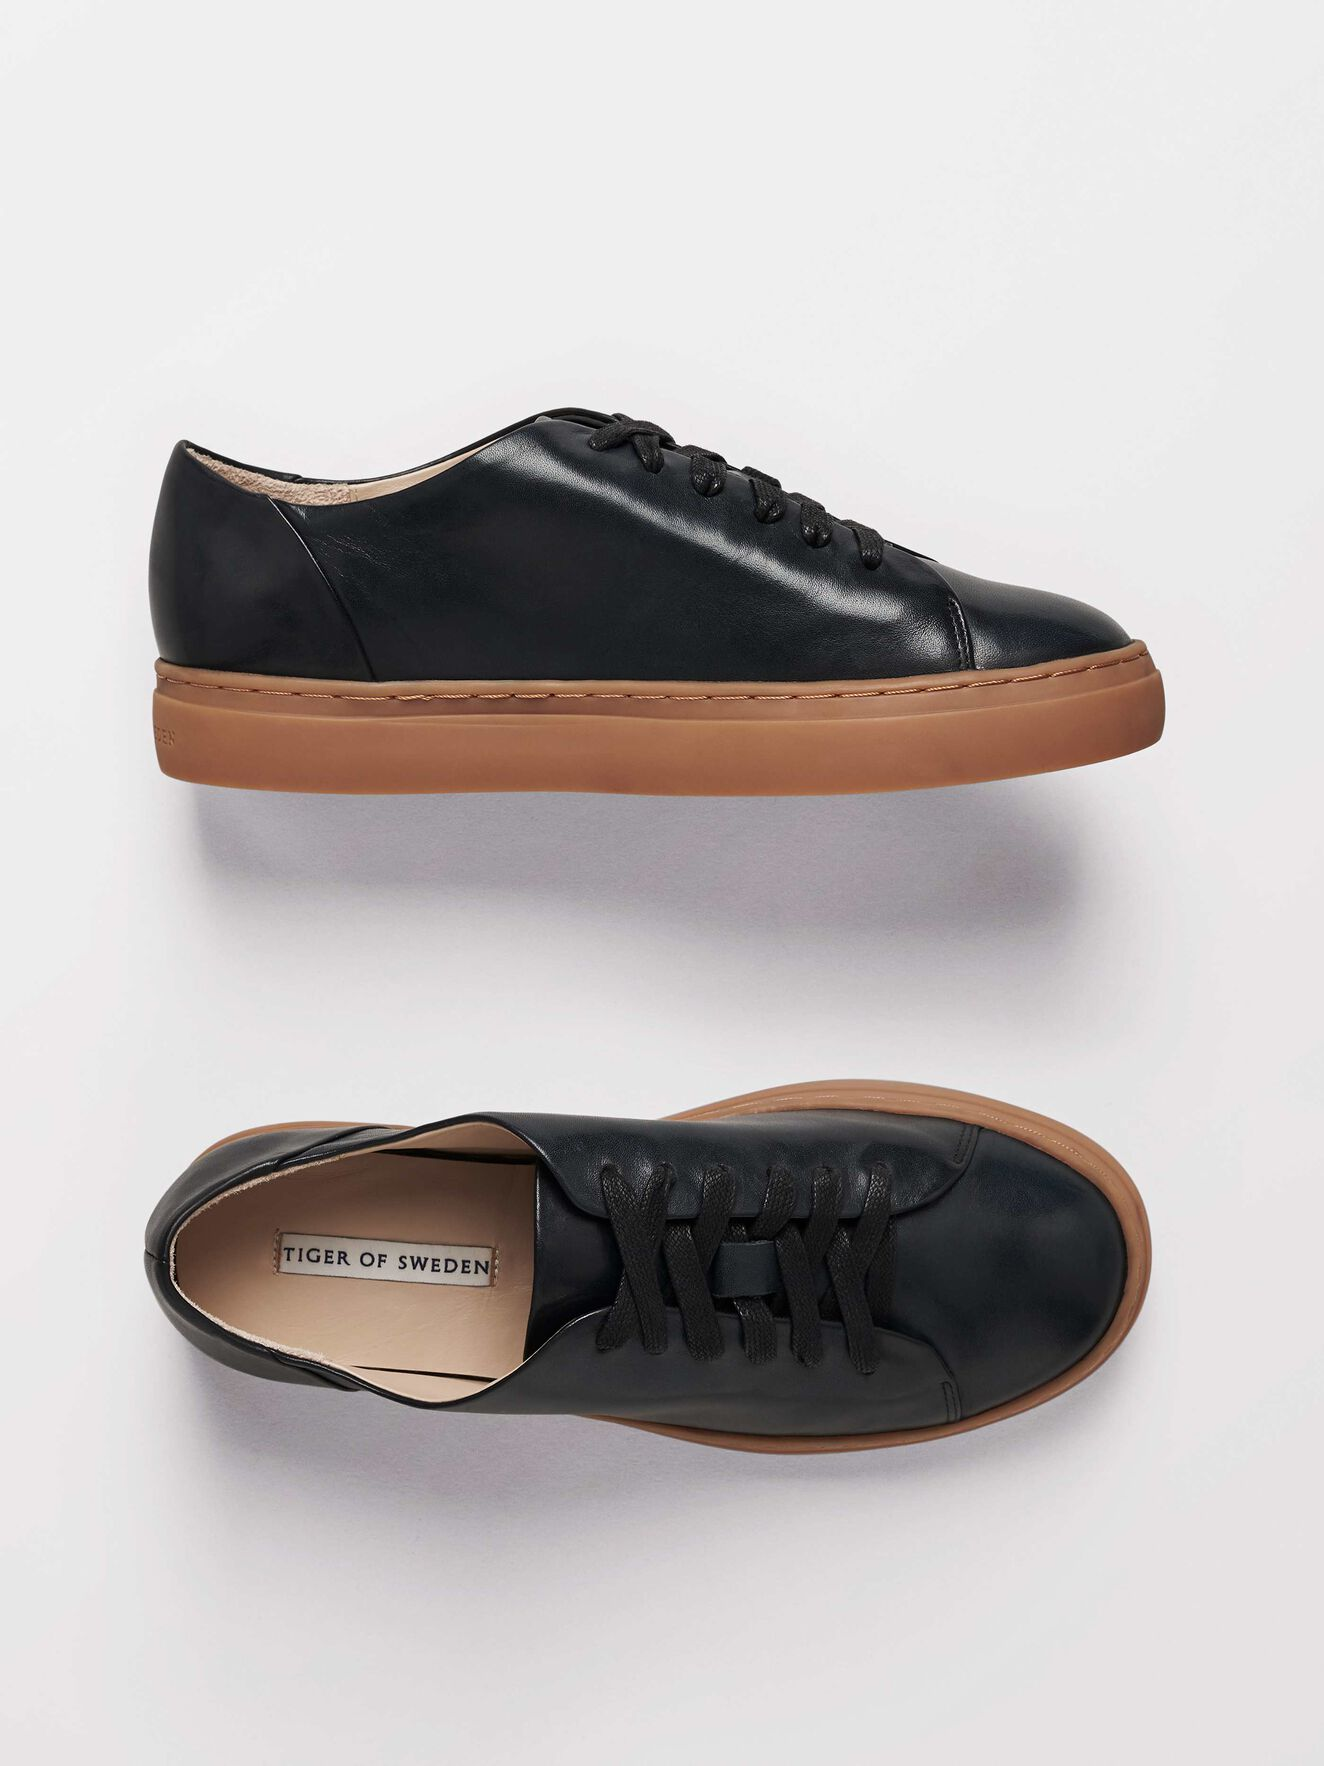 Sinensis Sneakers in Midnight Black from Tiger of Sweden